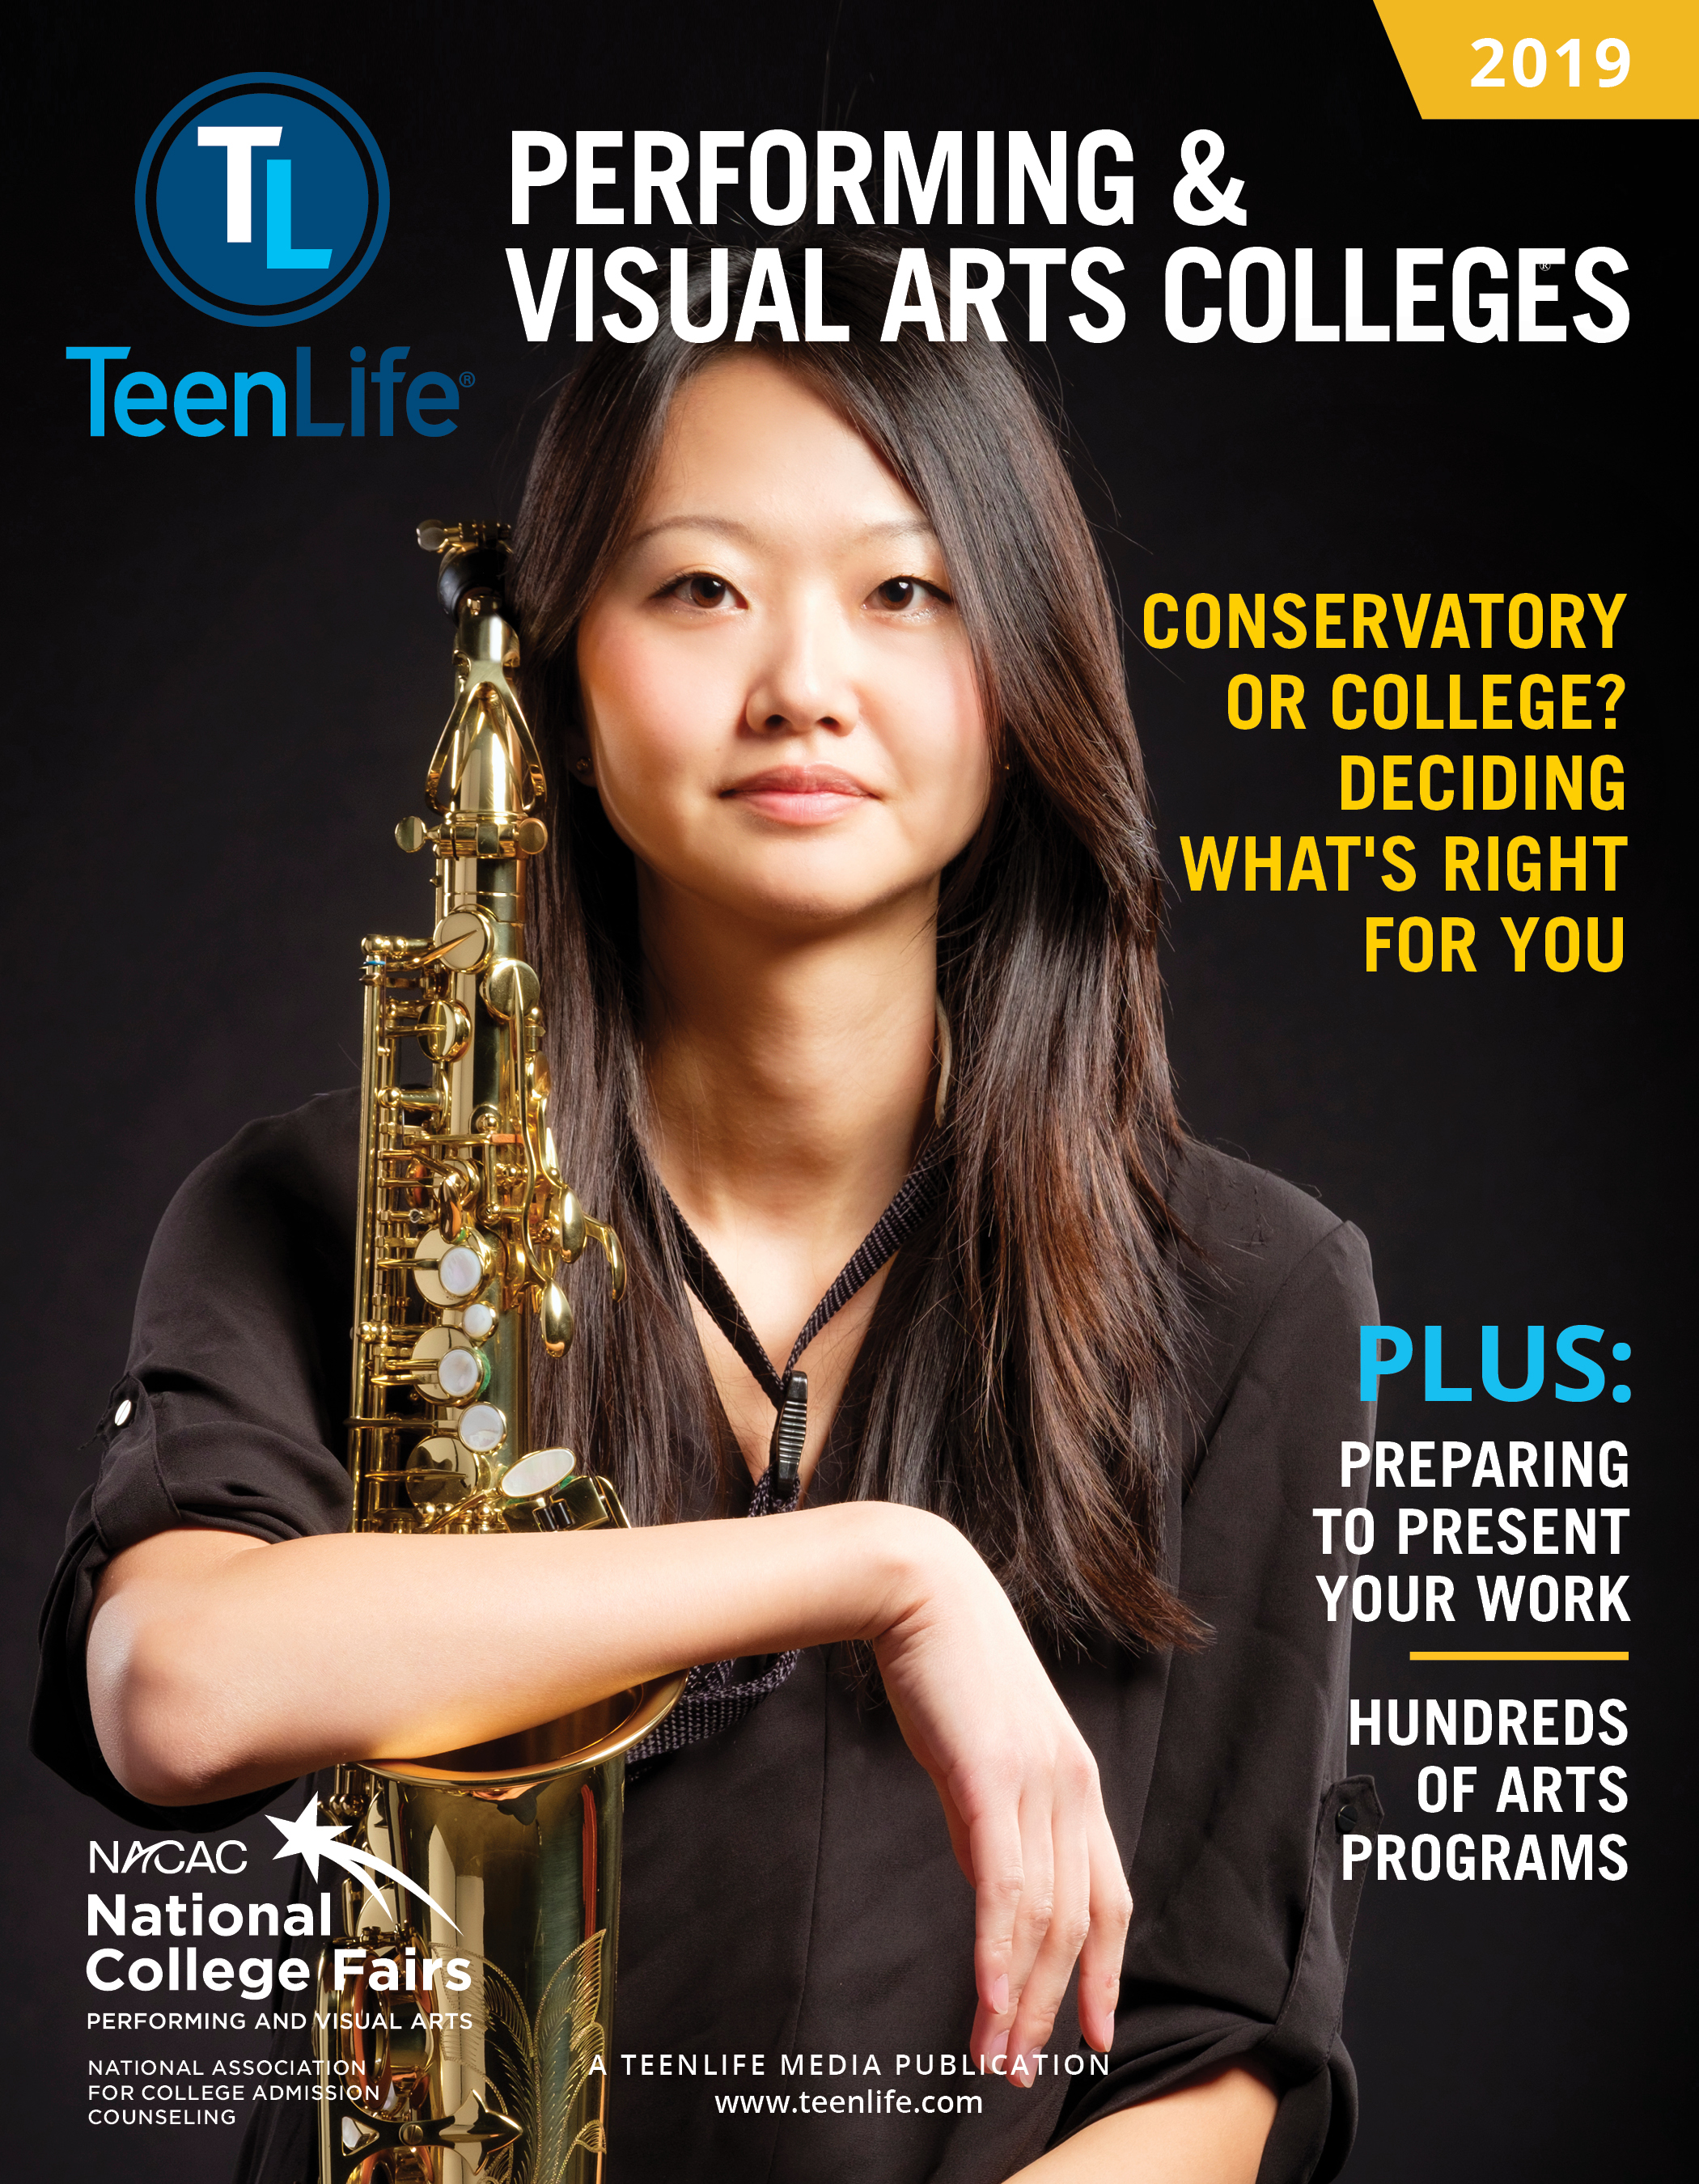 Guide to Performing and Visual Arts Colleges 2019-TeenLife